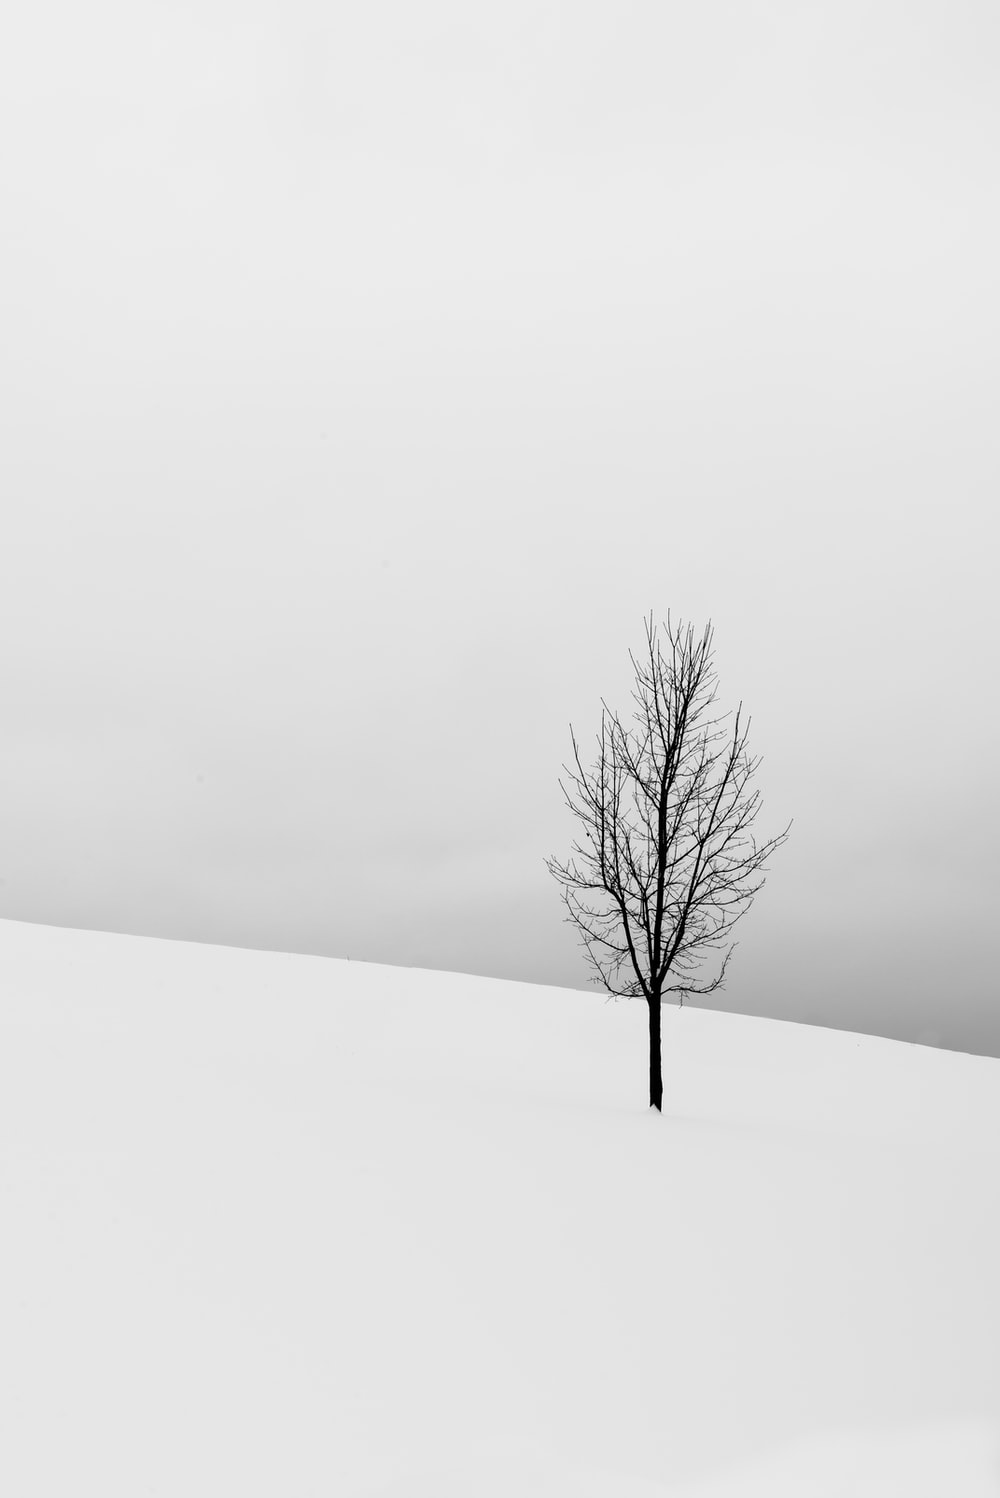 bare tree in middle of snowy field